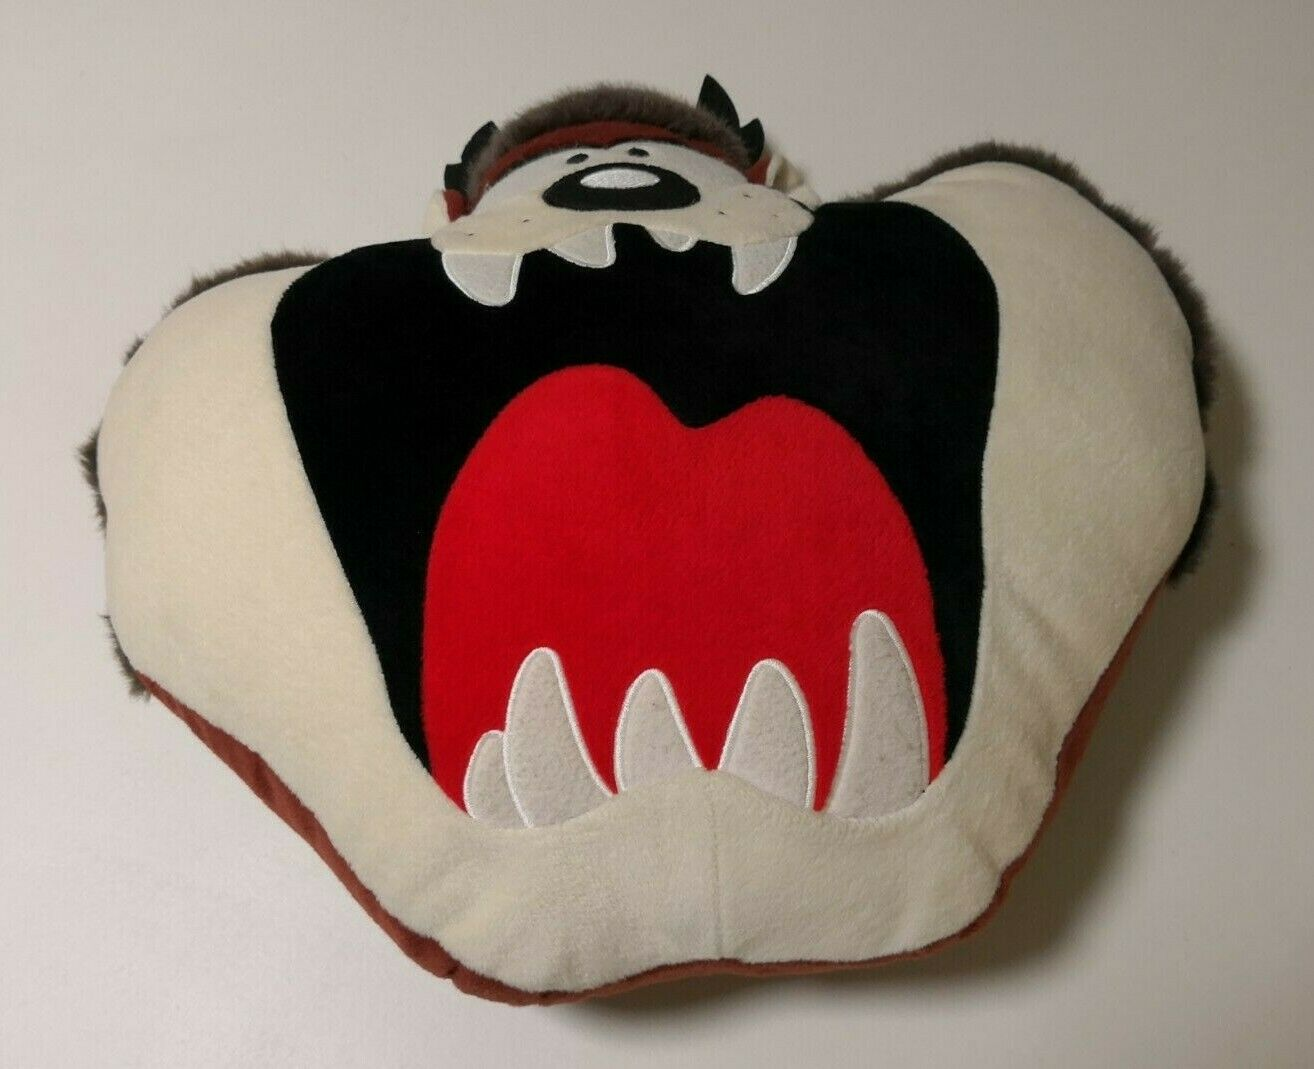 Vintage TAZ TASMANIAN DEVIL PLUSH ZIPPERED PILLOW Warner Bros Bros Bros Studio Store RARE  696dbb